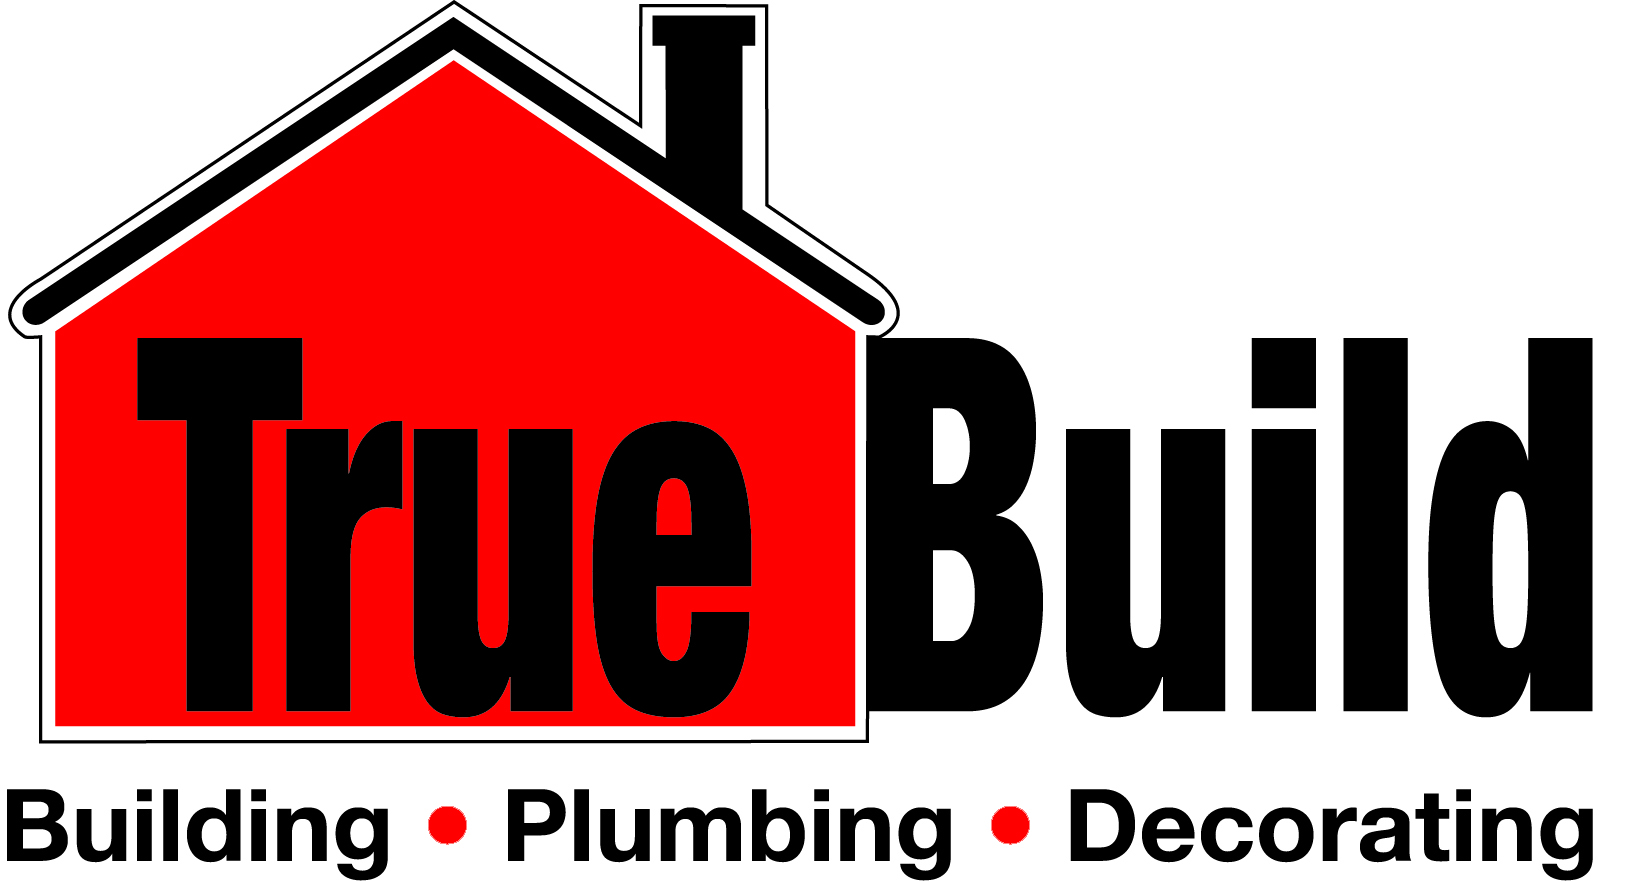 Your local builders now on the High Street